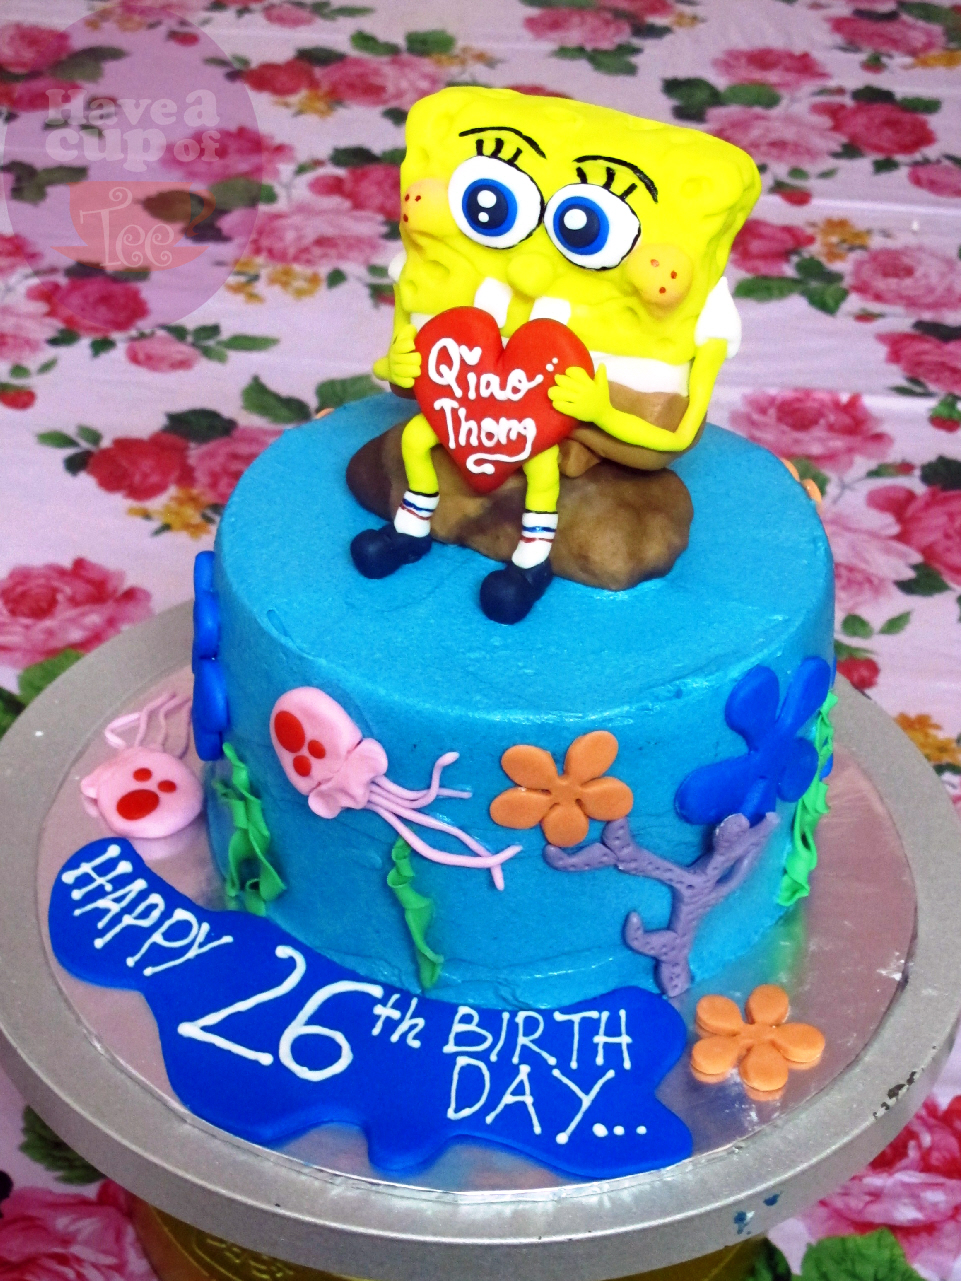 Spongebob birth date in Perth